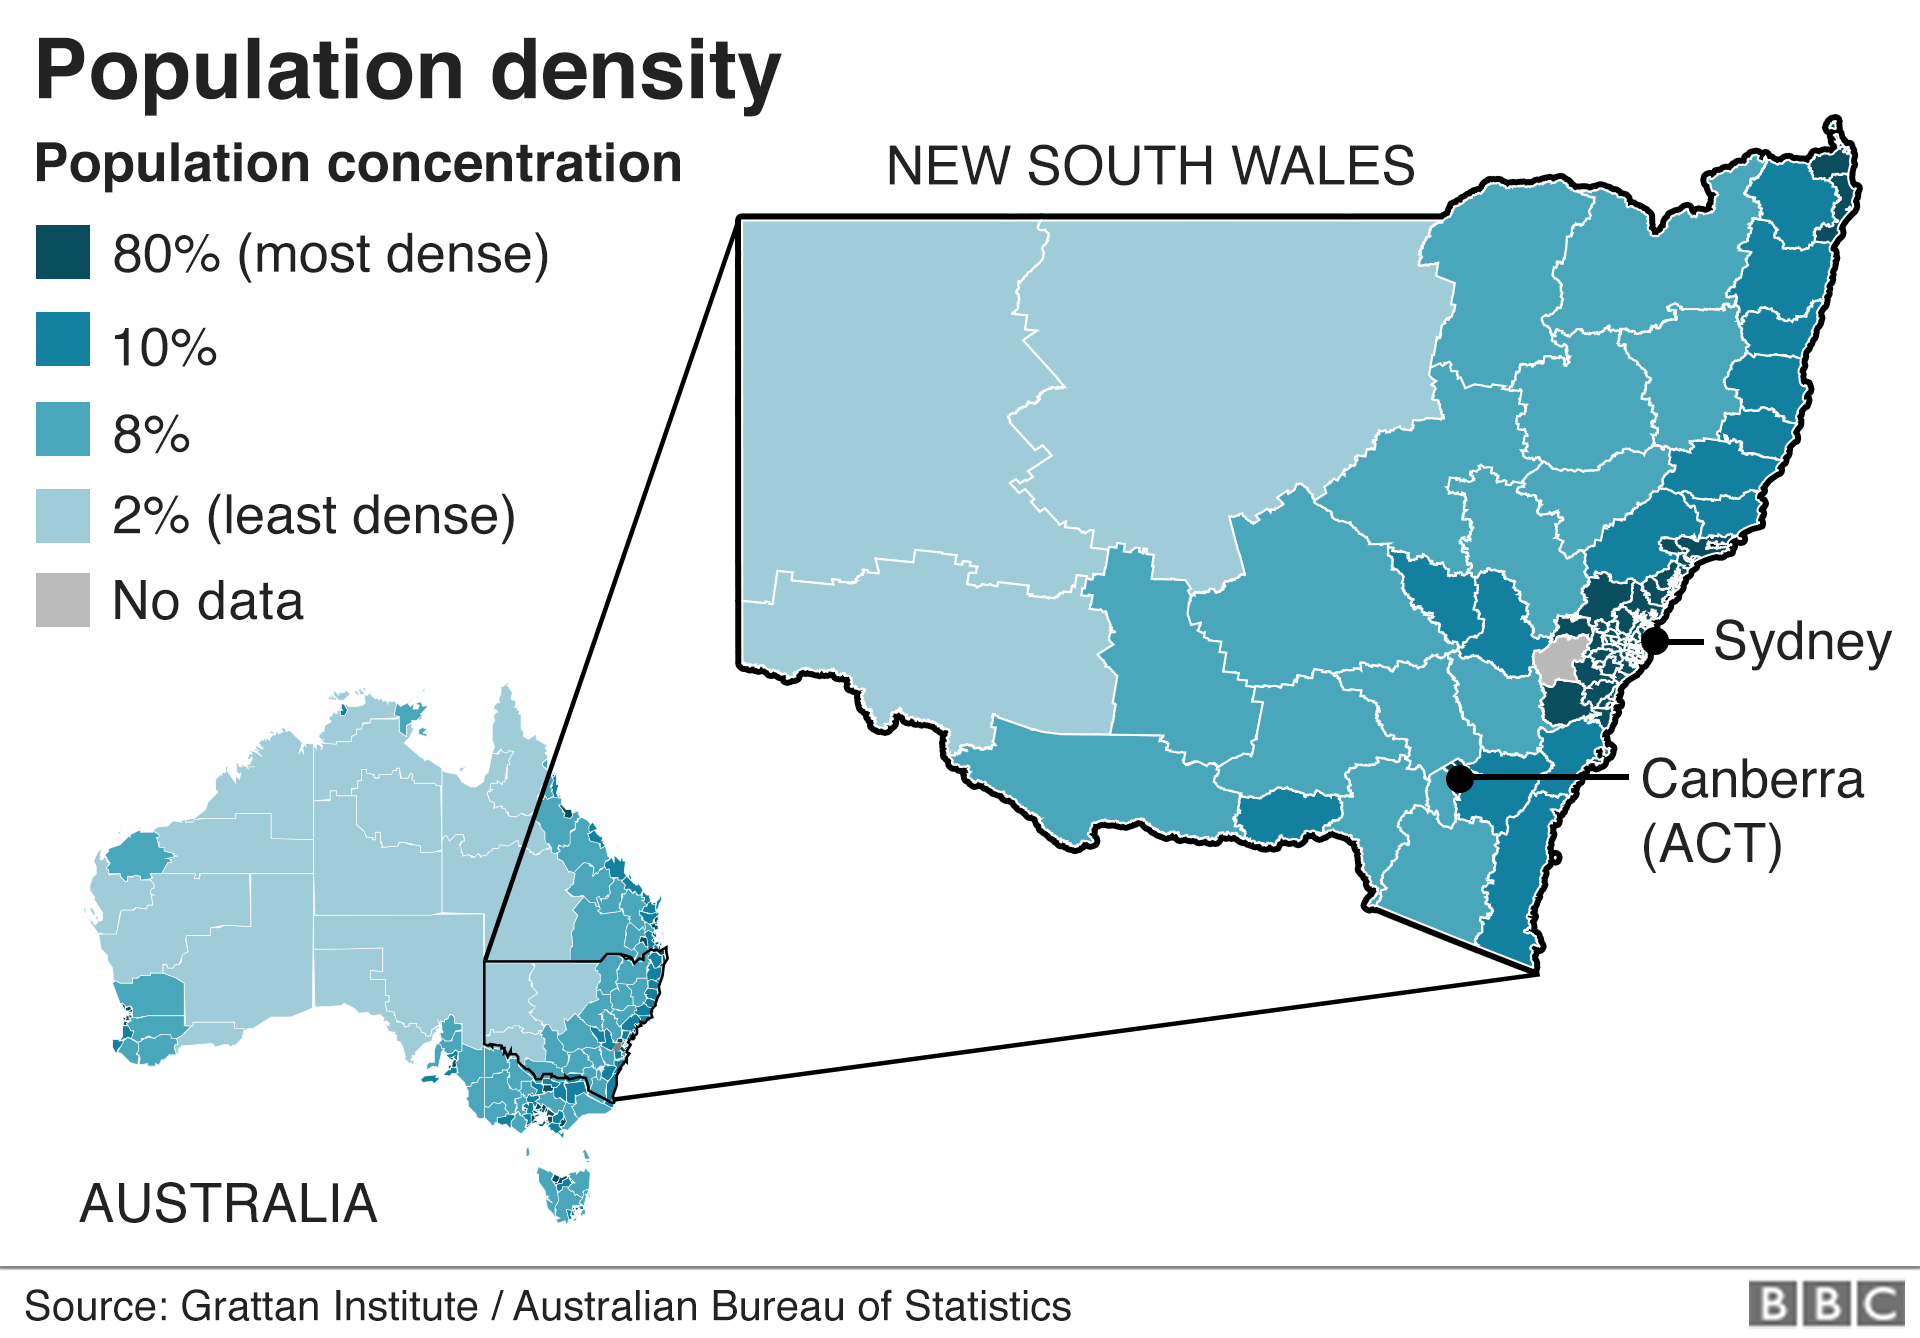 Map showing population density in New South Wales Australia